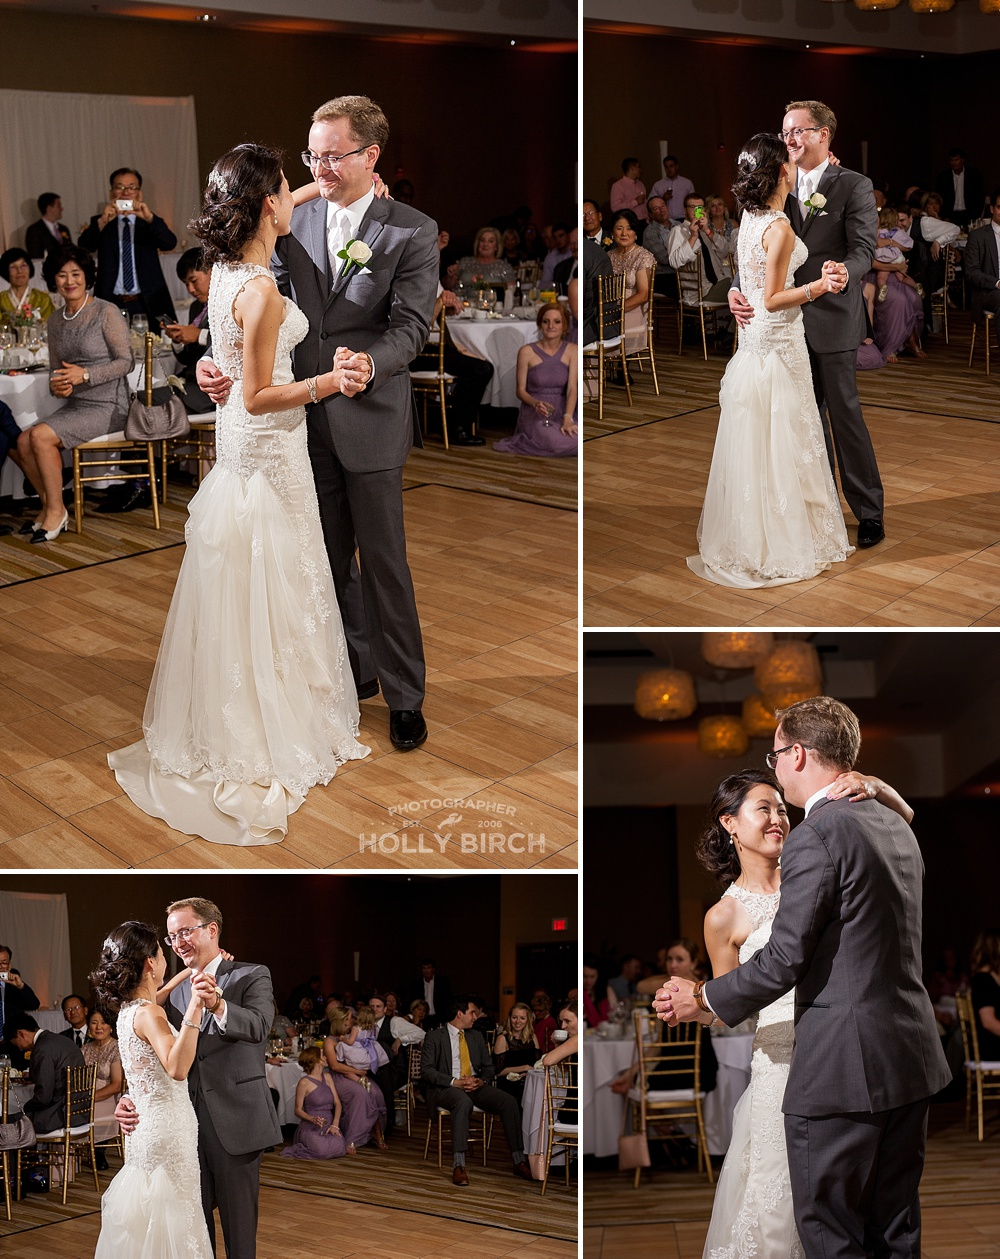 bride and groom's first dance as a married couple